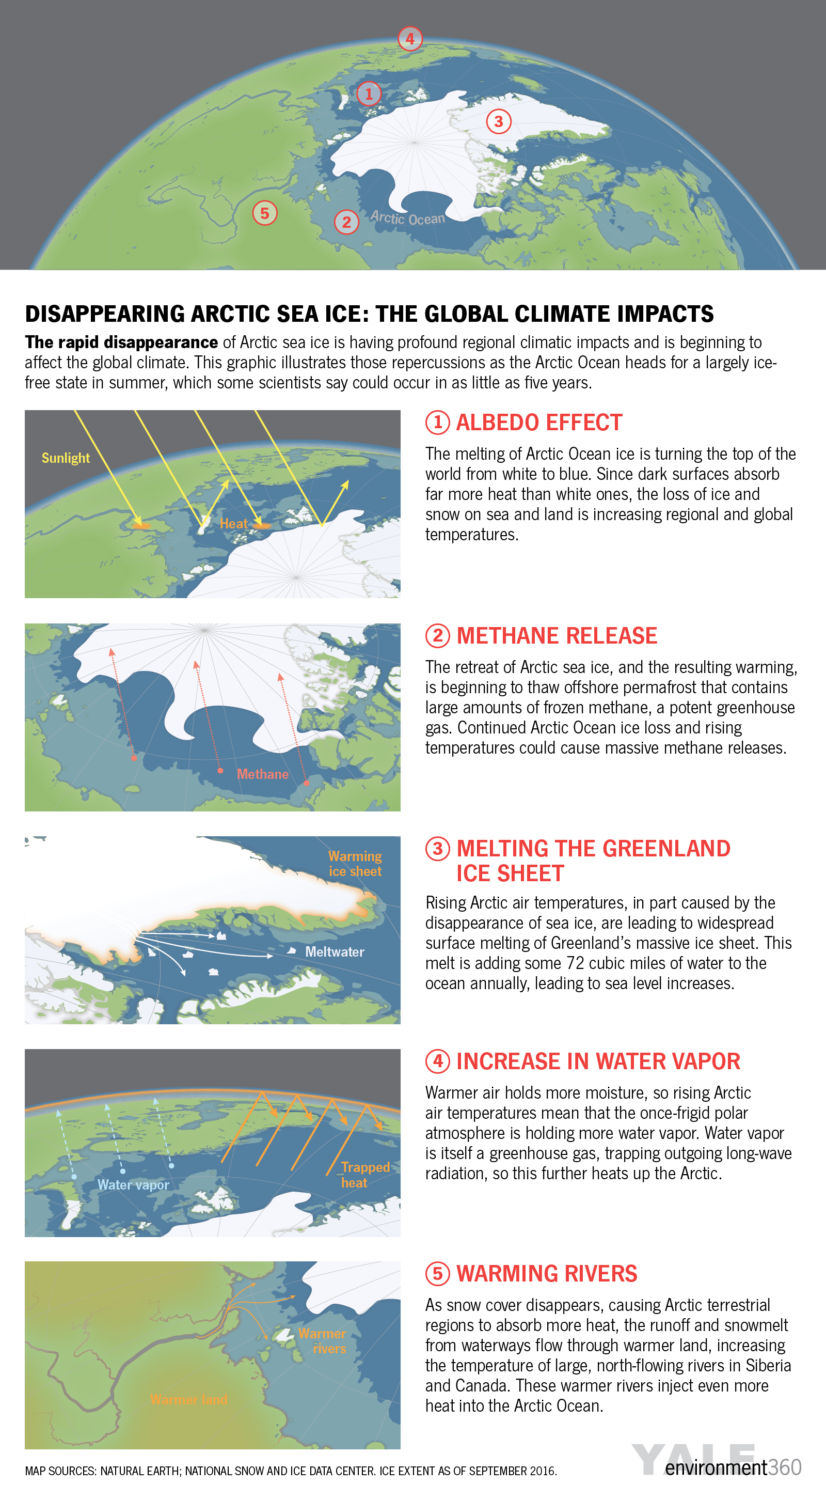 the global impacts of rapidly disappearing arctic sea ice yale e360 click to enlarge